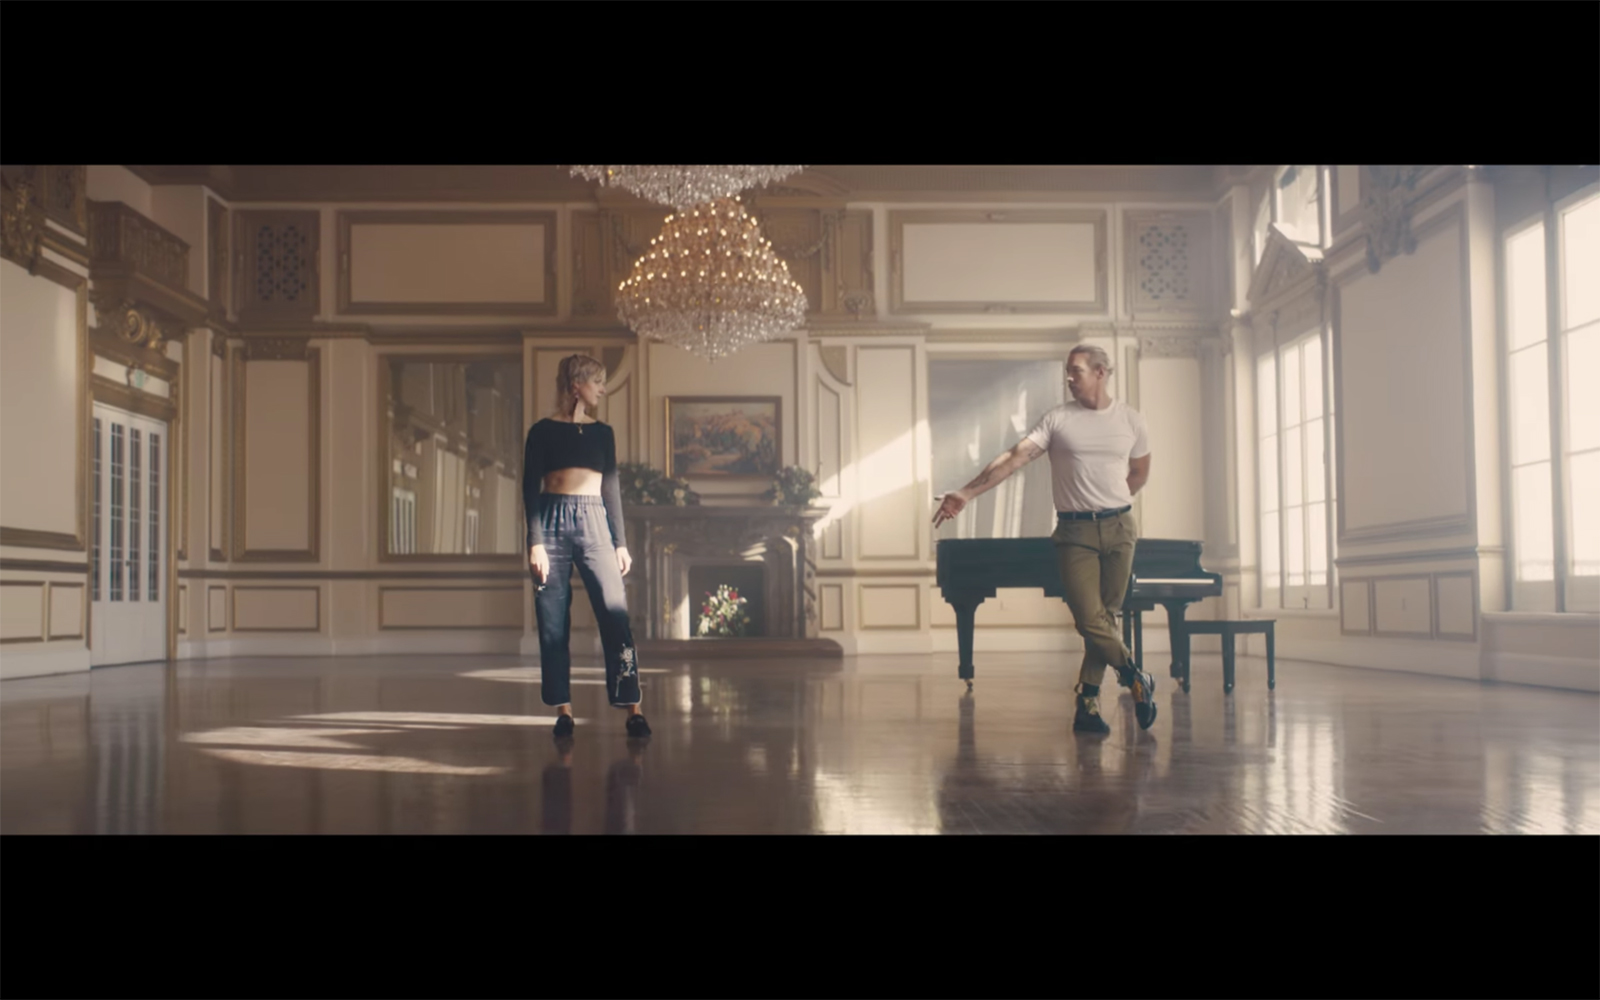 Moø and Diplo's music video Get It Right, filmed inside LA's former Alexandria Hotel